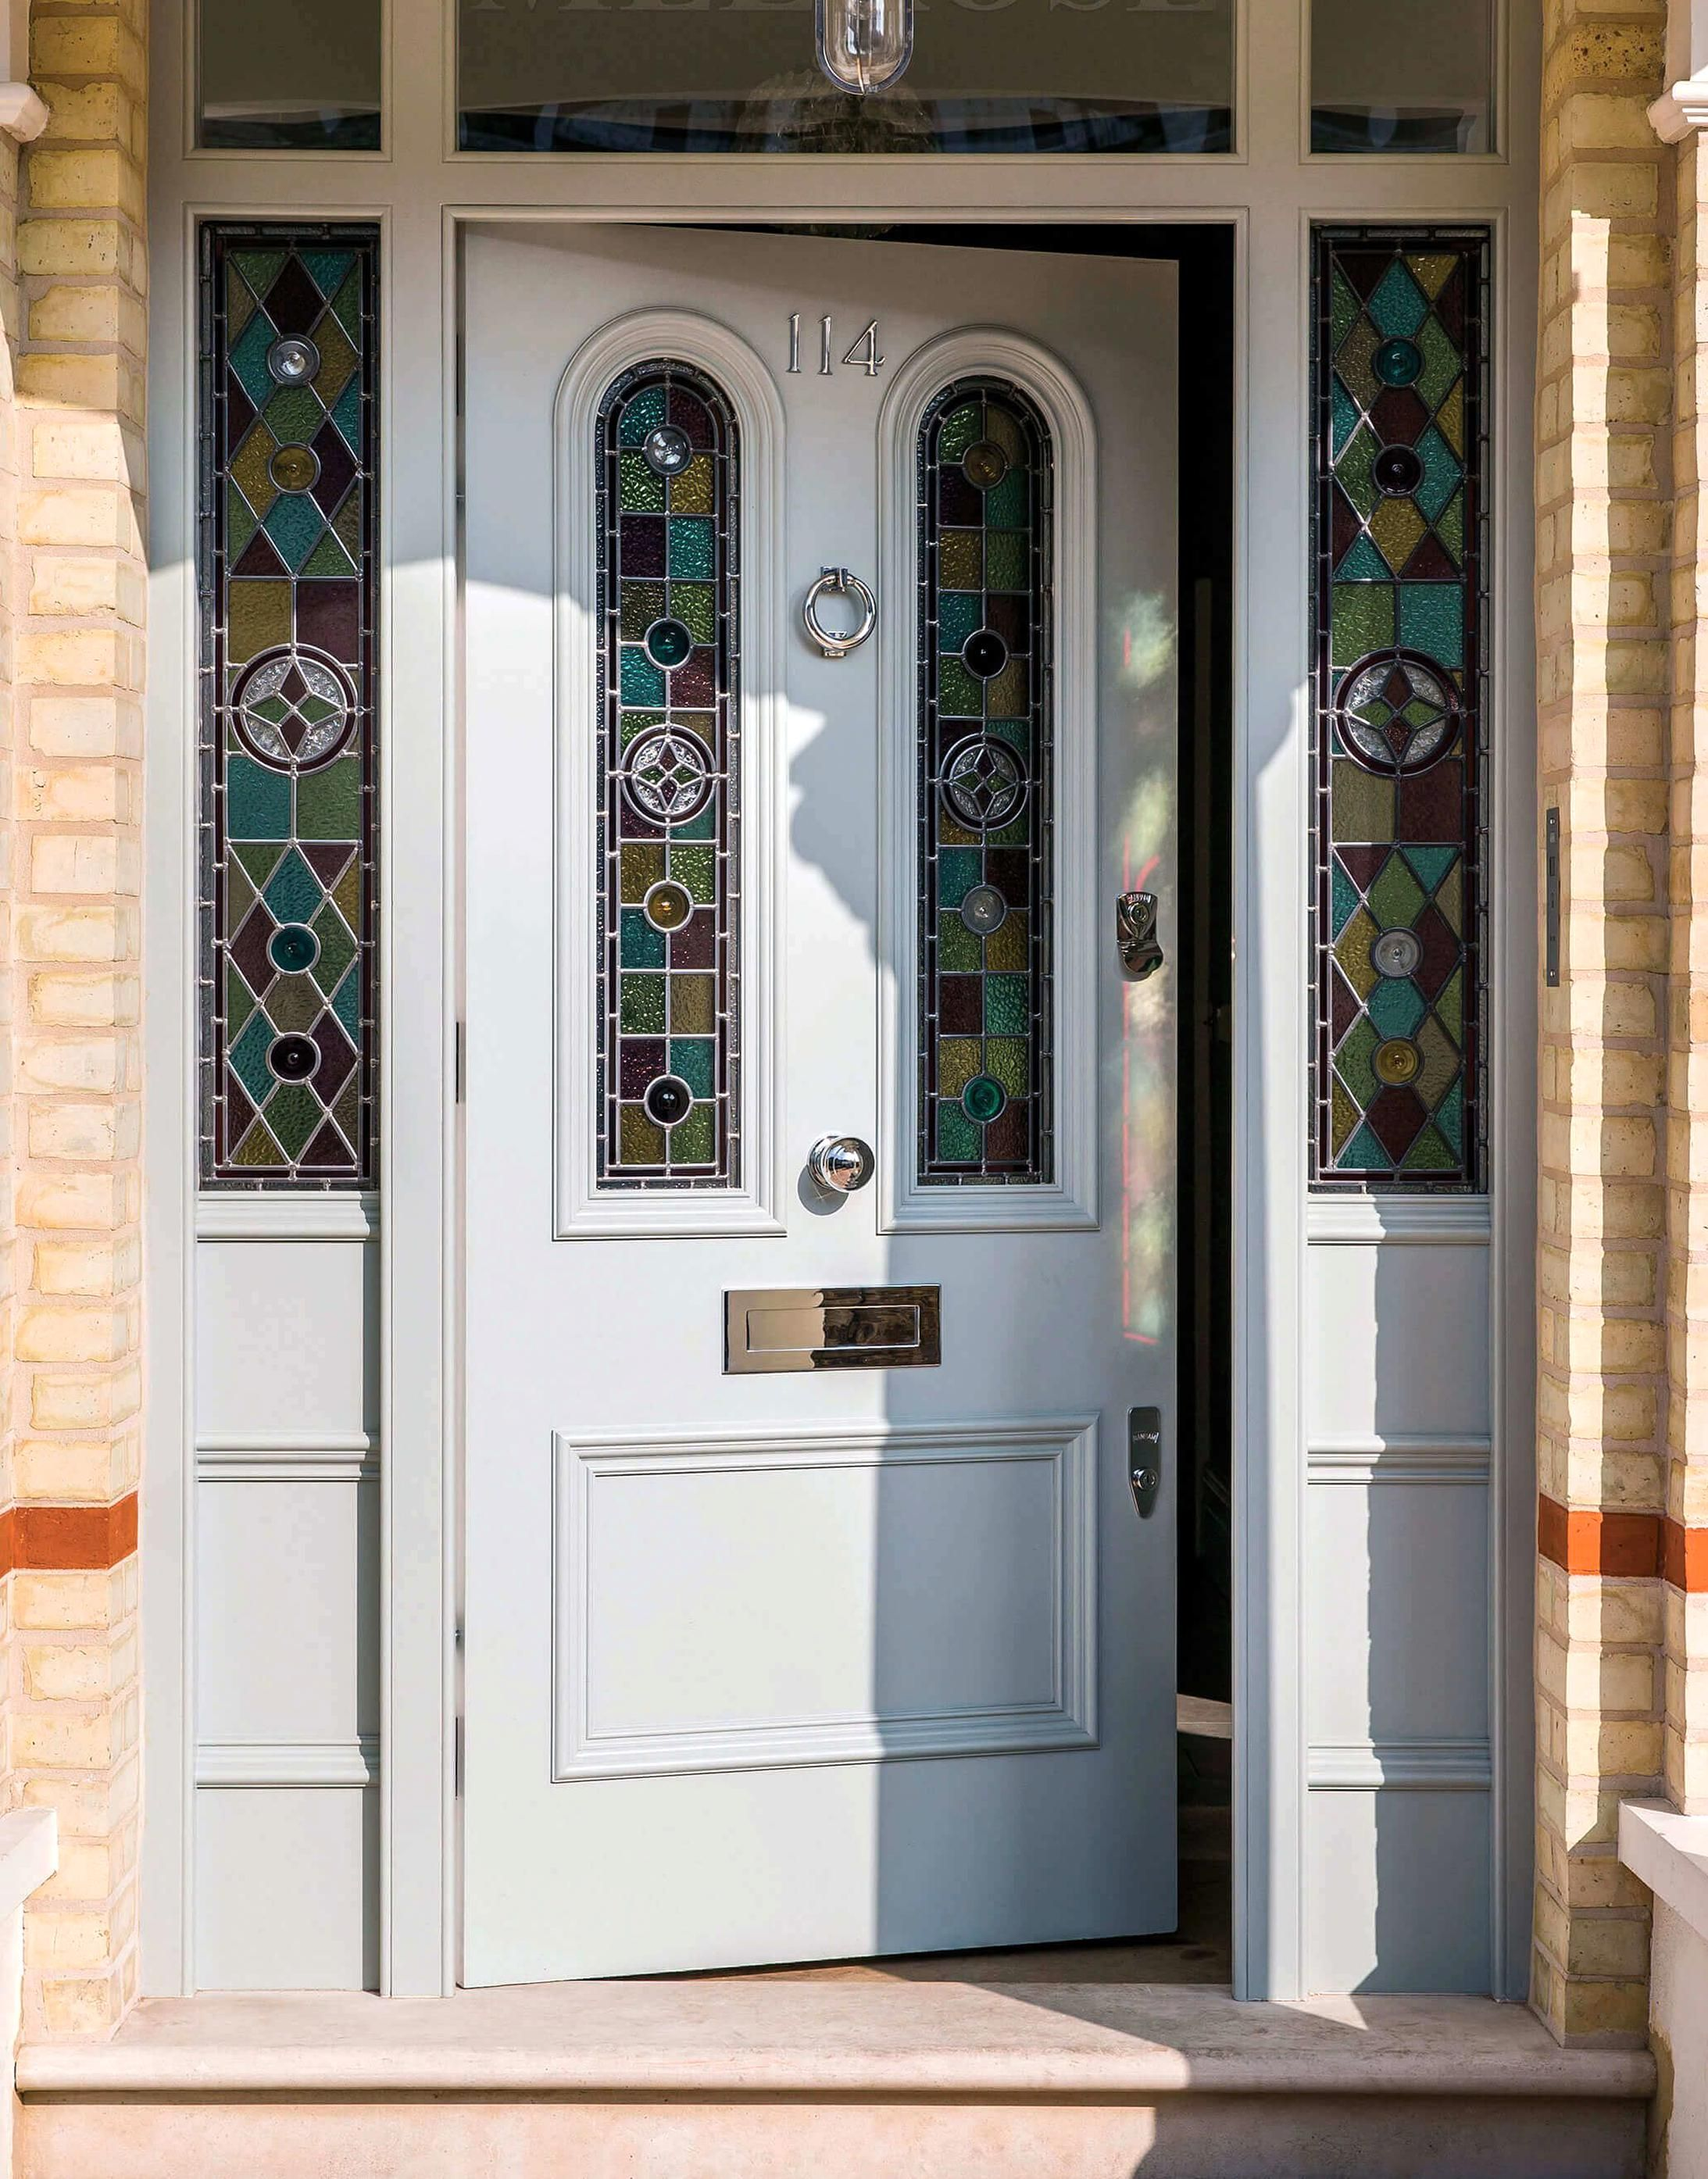 Extra Thick Victorian Glass Door And Doorframe With Stained Glass Arches And Chrome Door Furniture In 2020 Victorian Front Doors Cottage Front Doors Wooden Front Doors